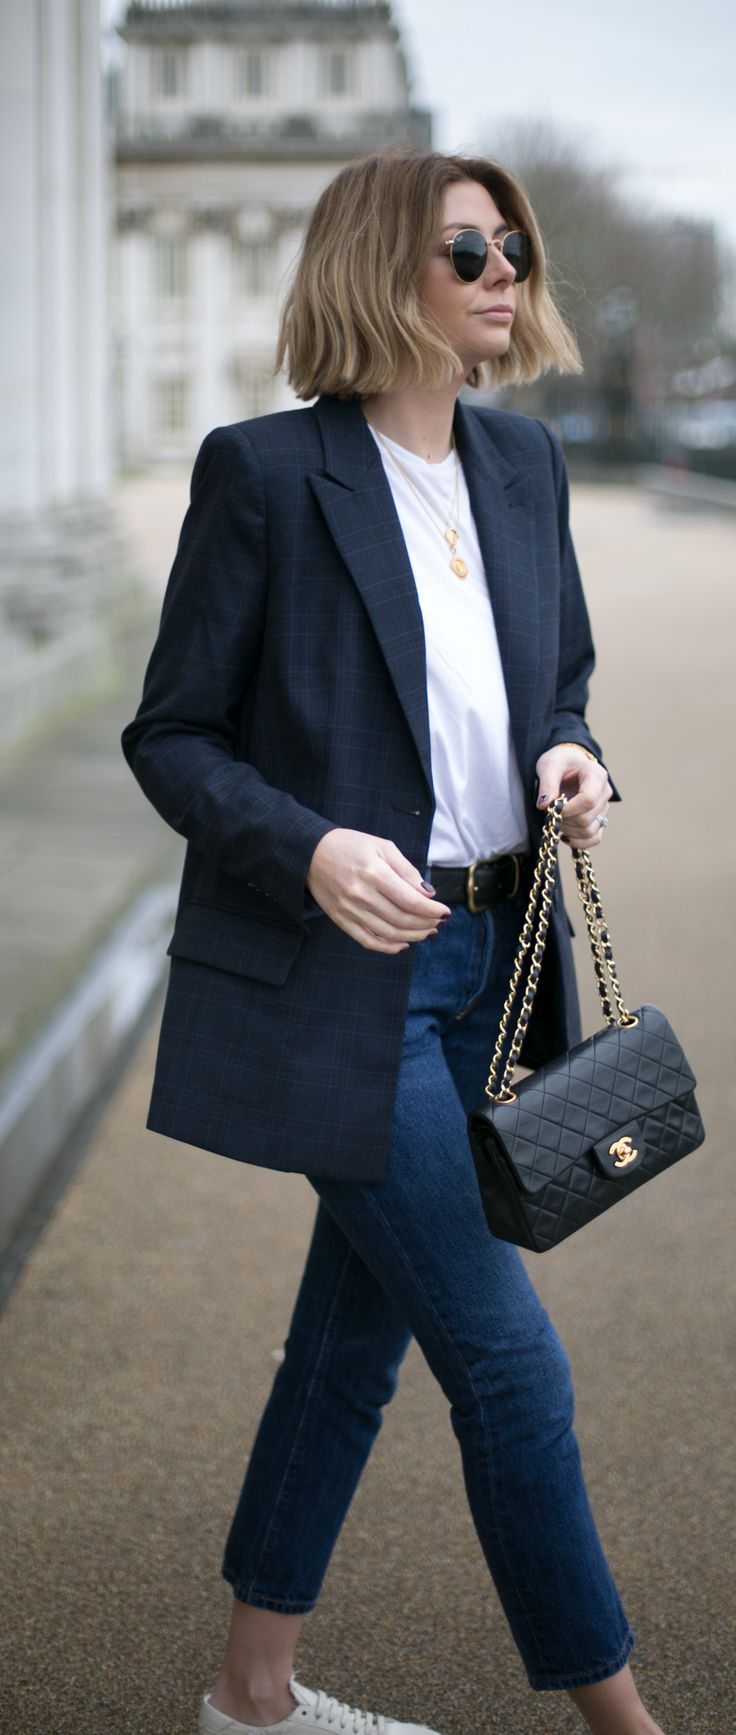 Emma Hill style, navy check blazer, white t shirt, dark wash Levi's 501 jeans, black Chanel vintage timeless bag, round ray ban sunglasses, spring outfit, casual fashion